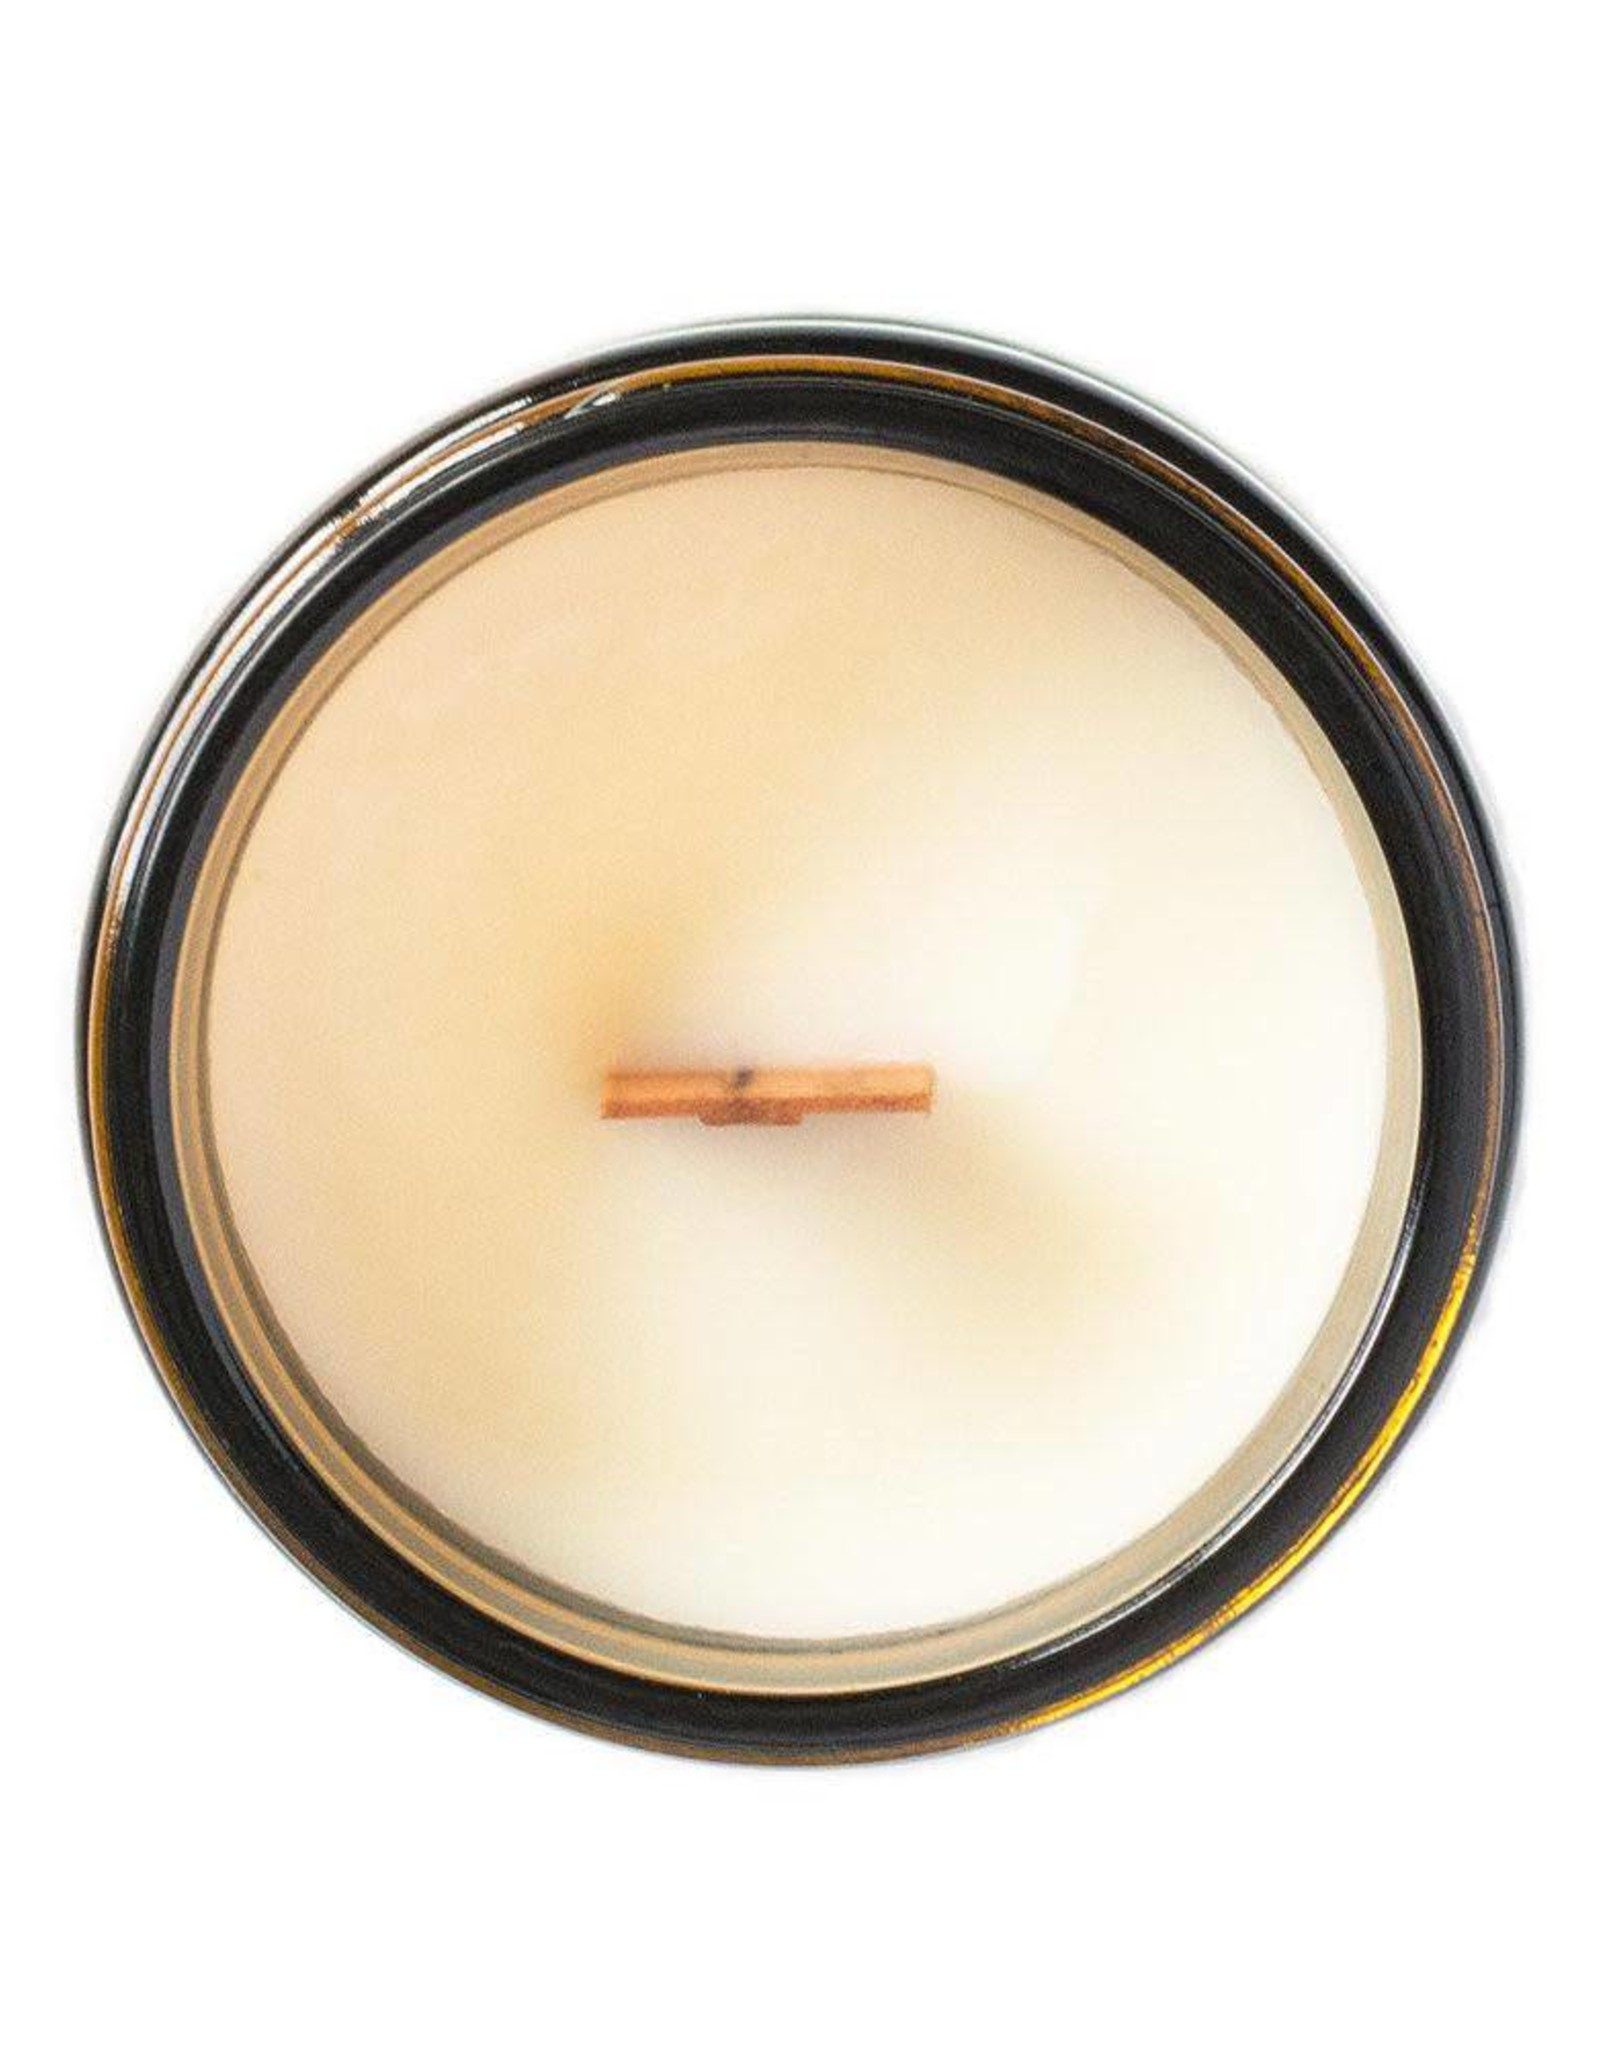 Sugi tree studio Wood Wick Candle - Cactus Blossom